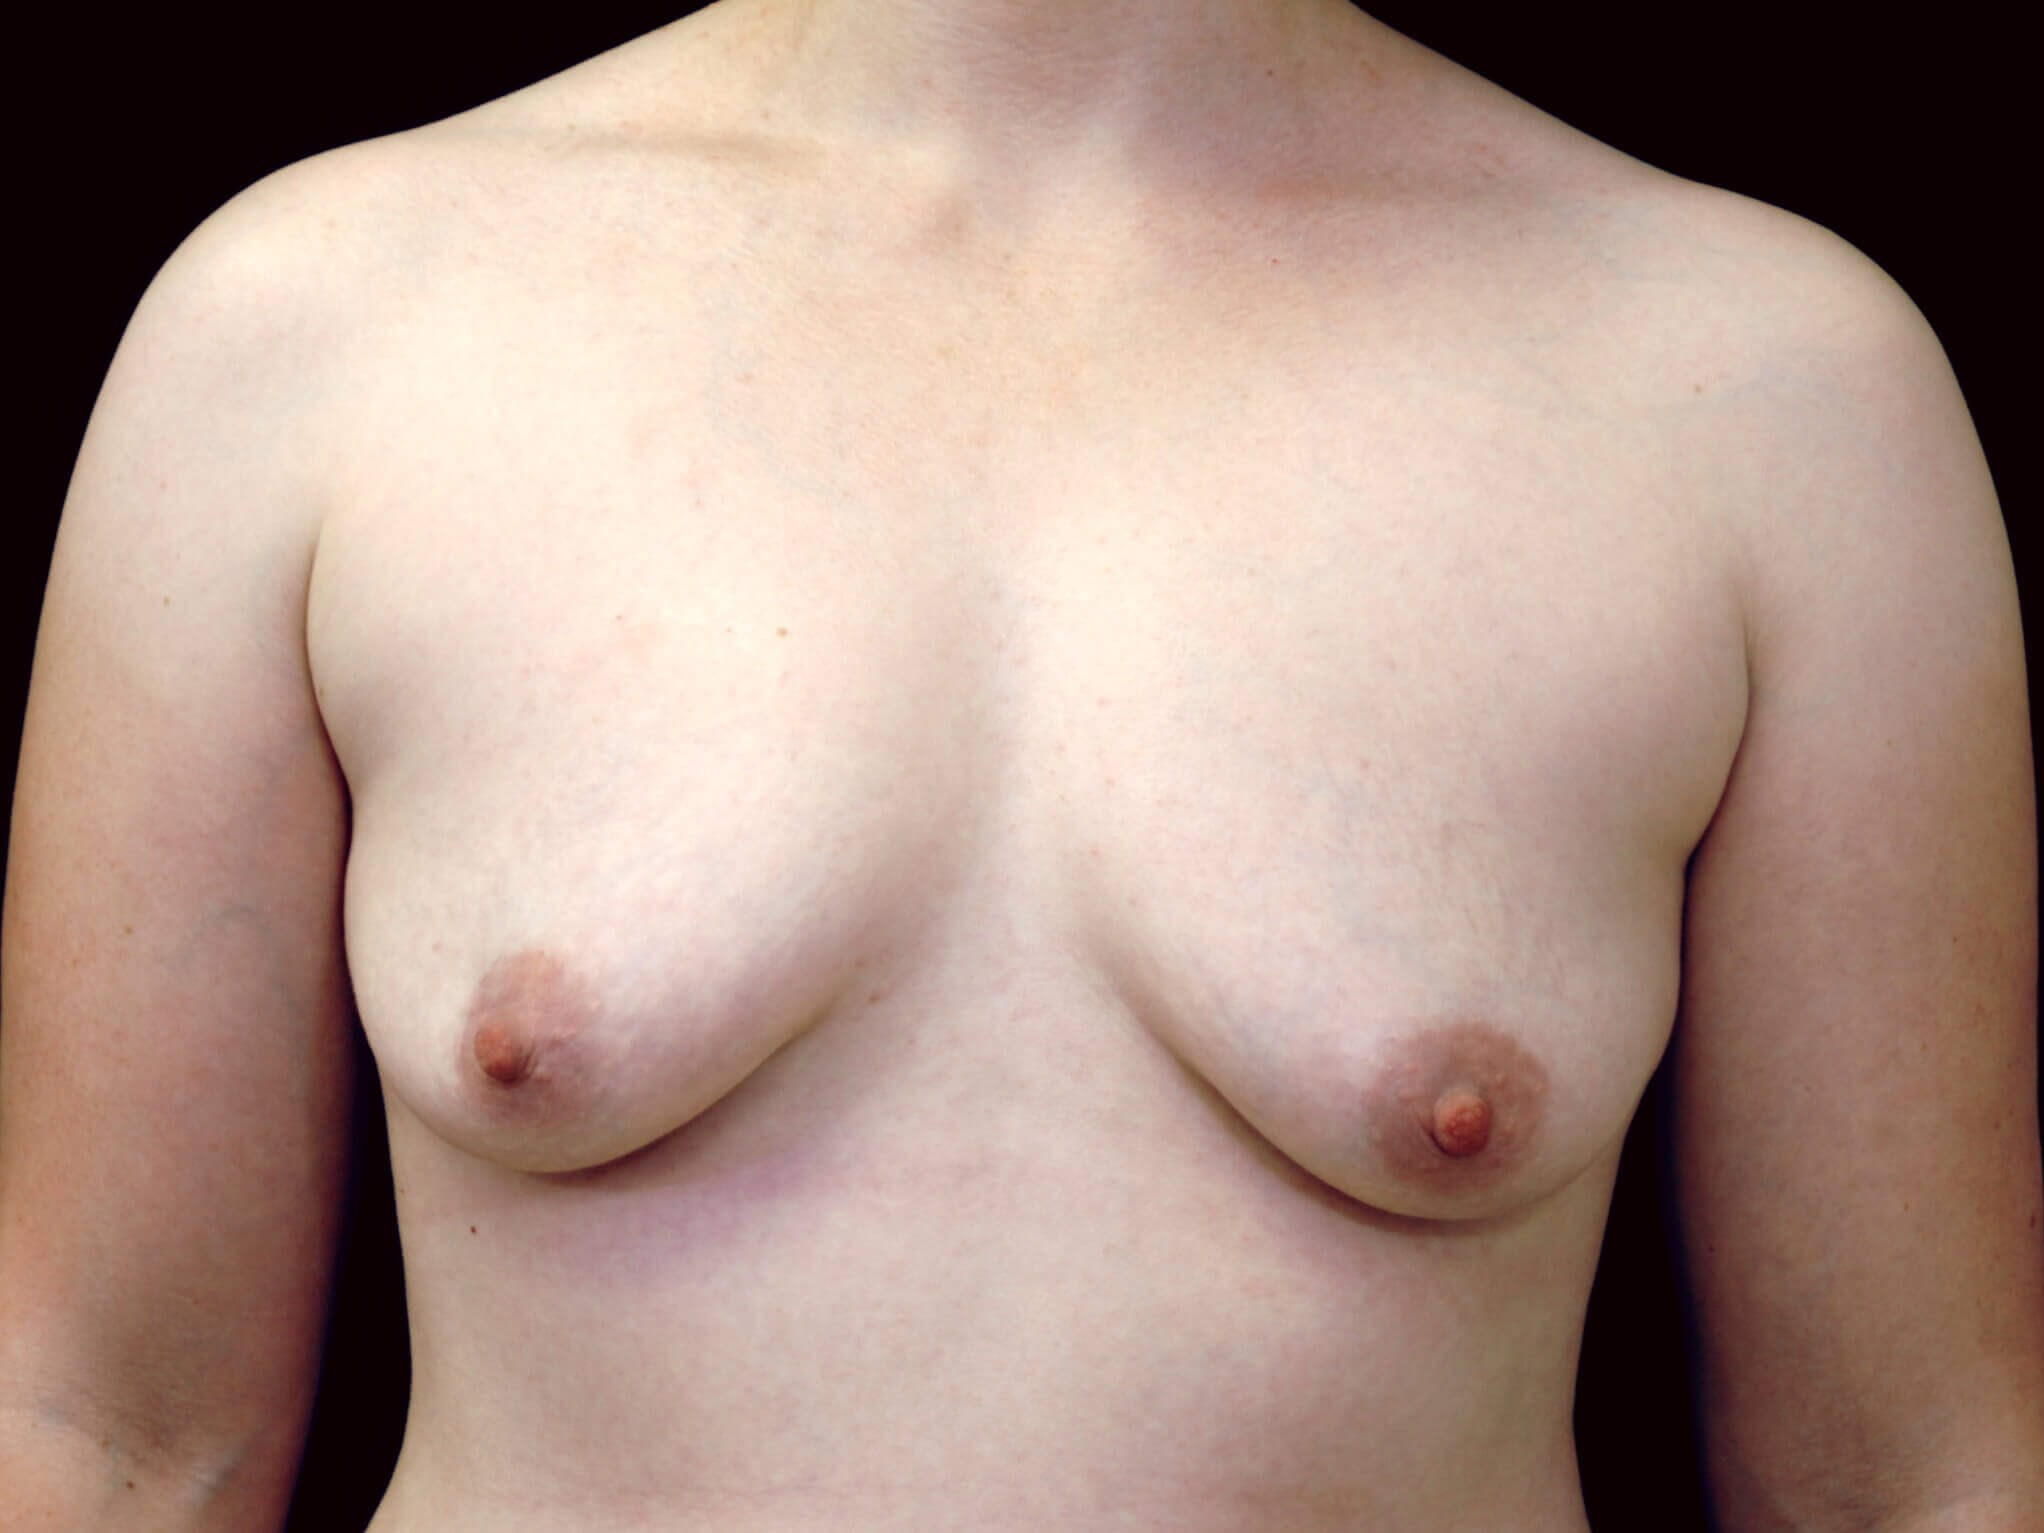 DALLAS, TEXAS WOMAN HAS BREAST AUGMENTATION WITH SALINE BREAST IMPLANTS